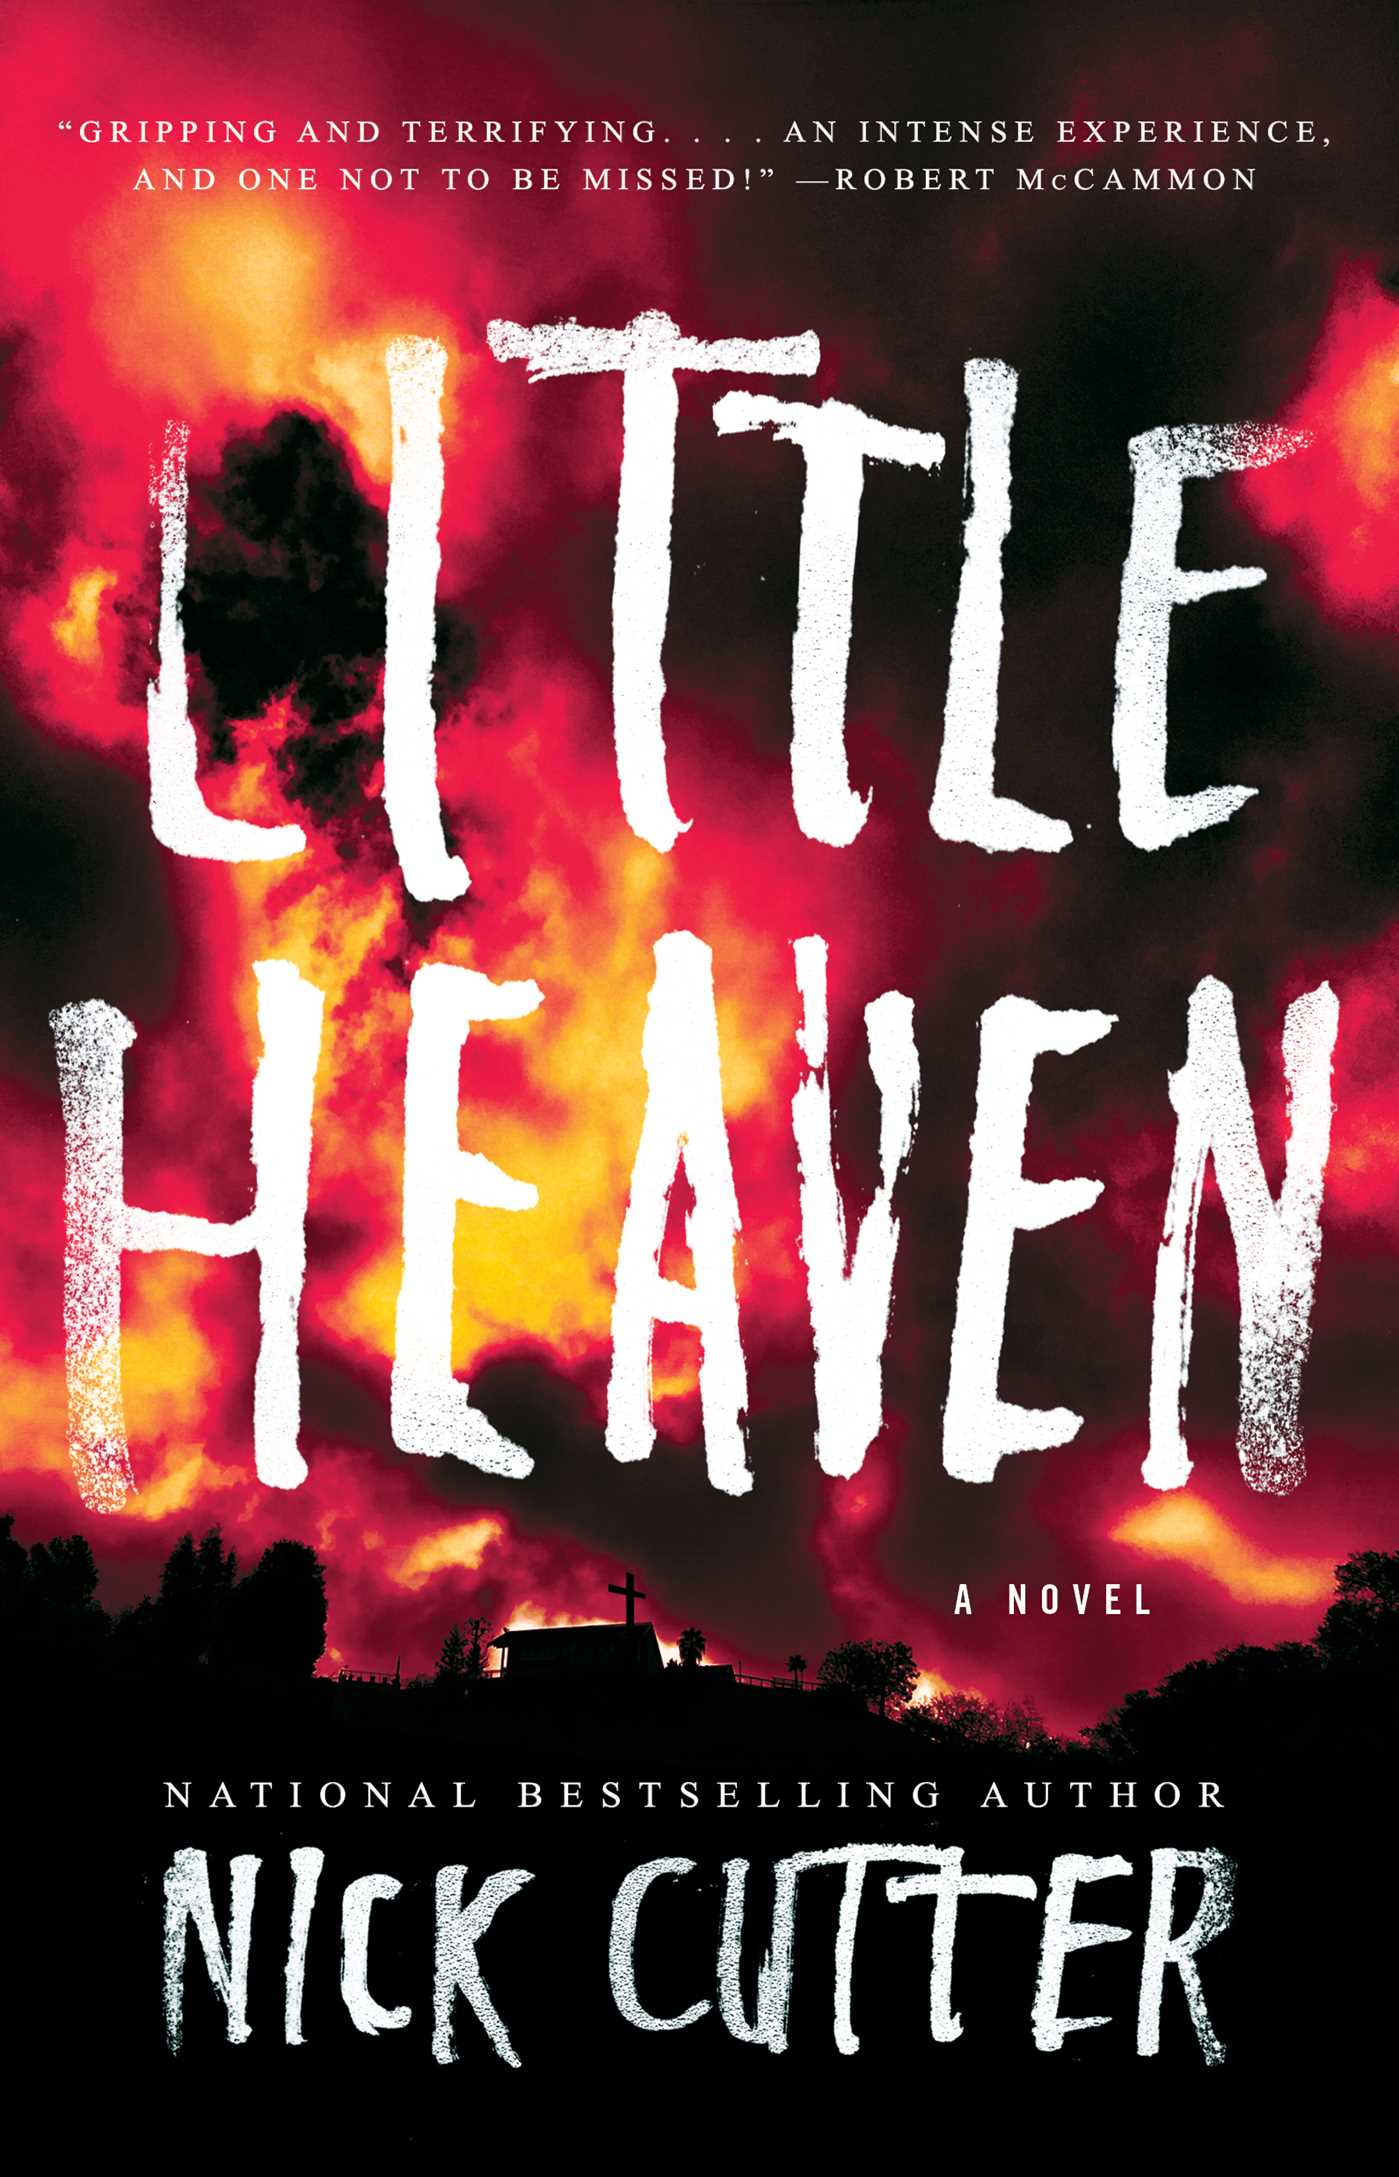 Little heaven 9781501104220 hr